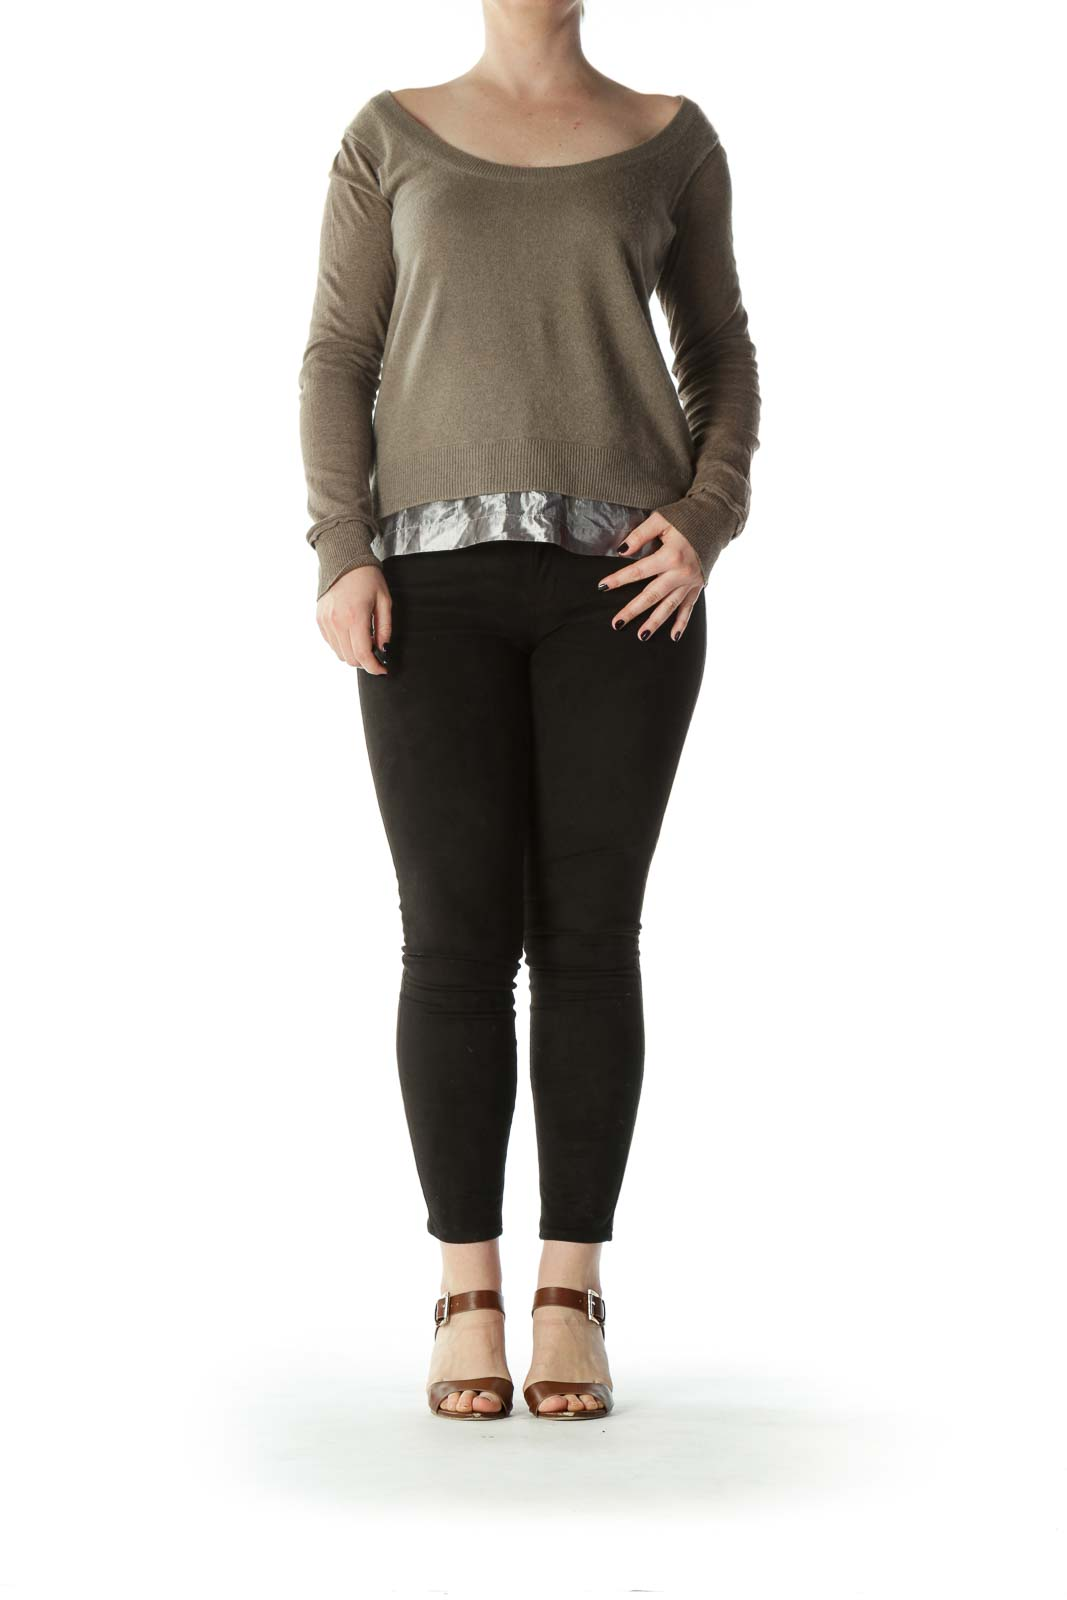 Beige Silver-Trim Cashmere and Cotton Knit Top